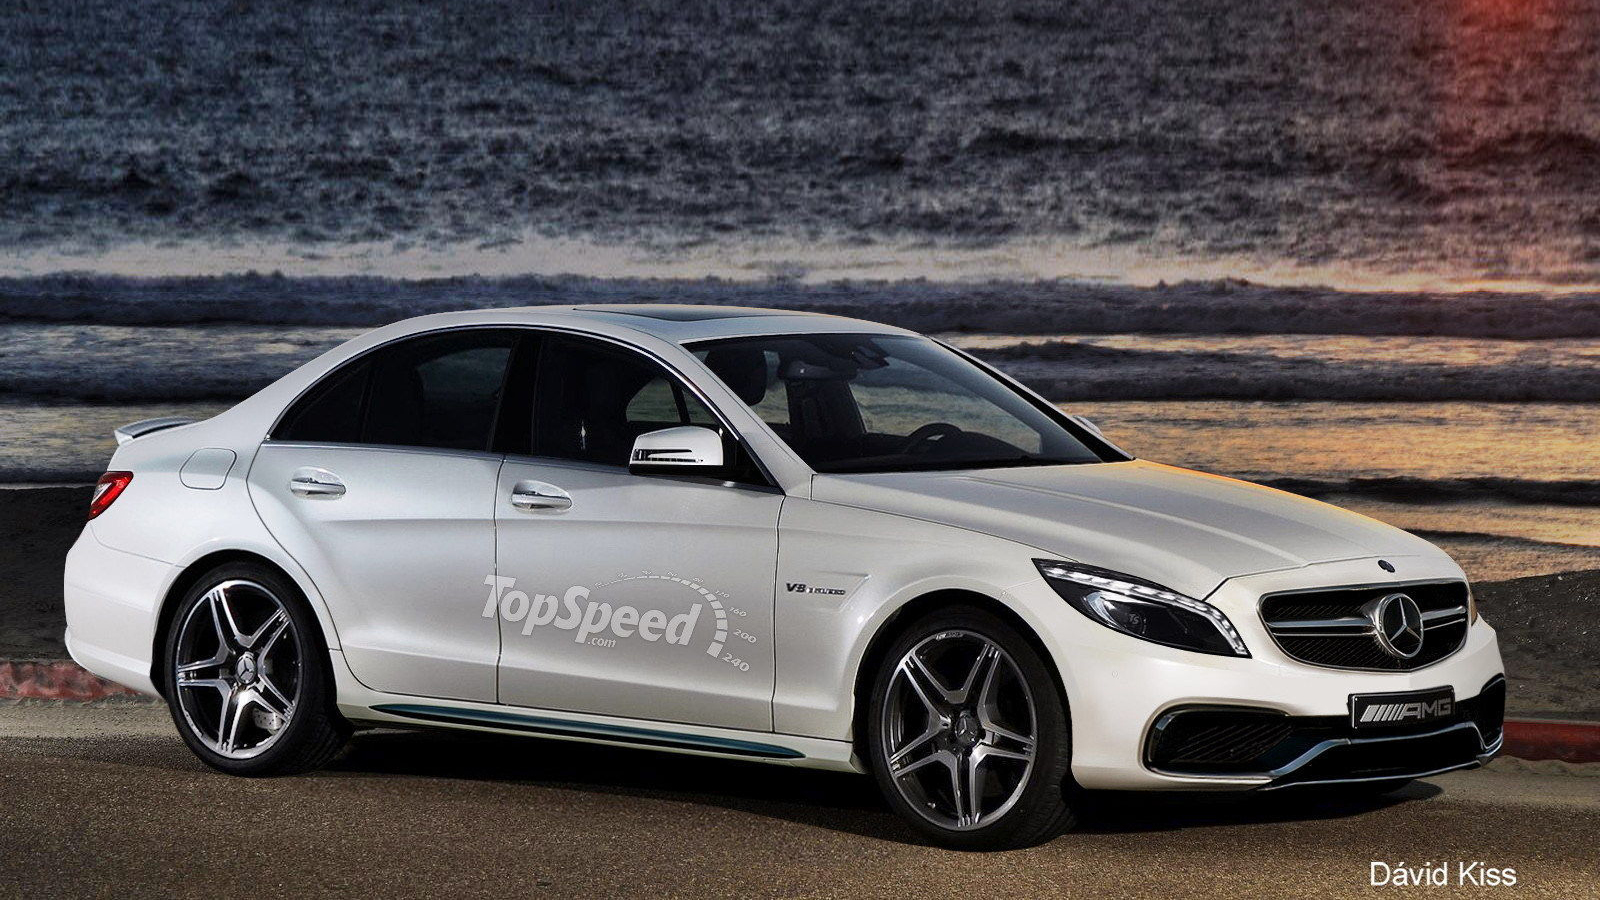 2015 new mercedes benz c class w205 preview 1 2 carwp for New mercedes benz 2015